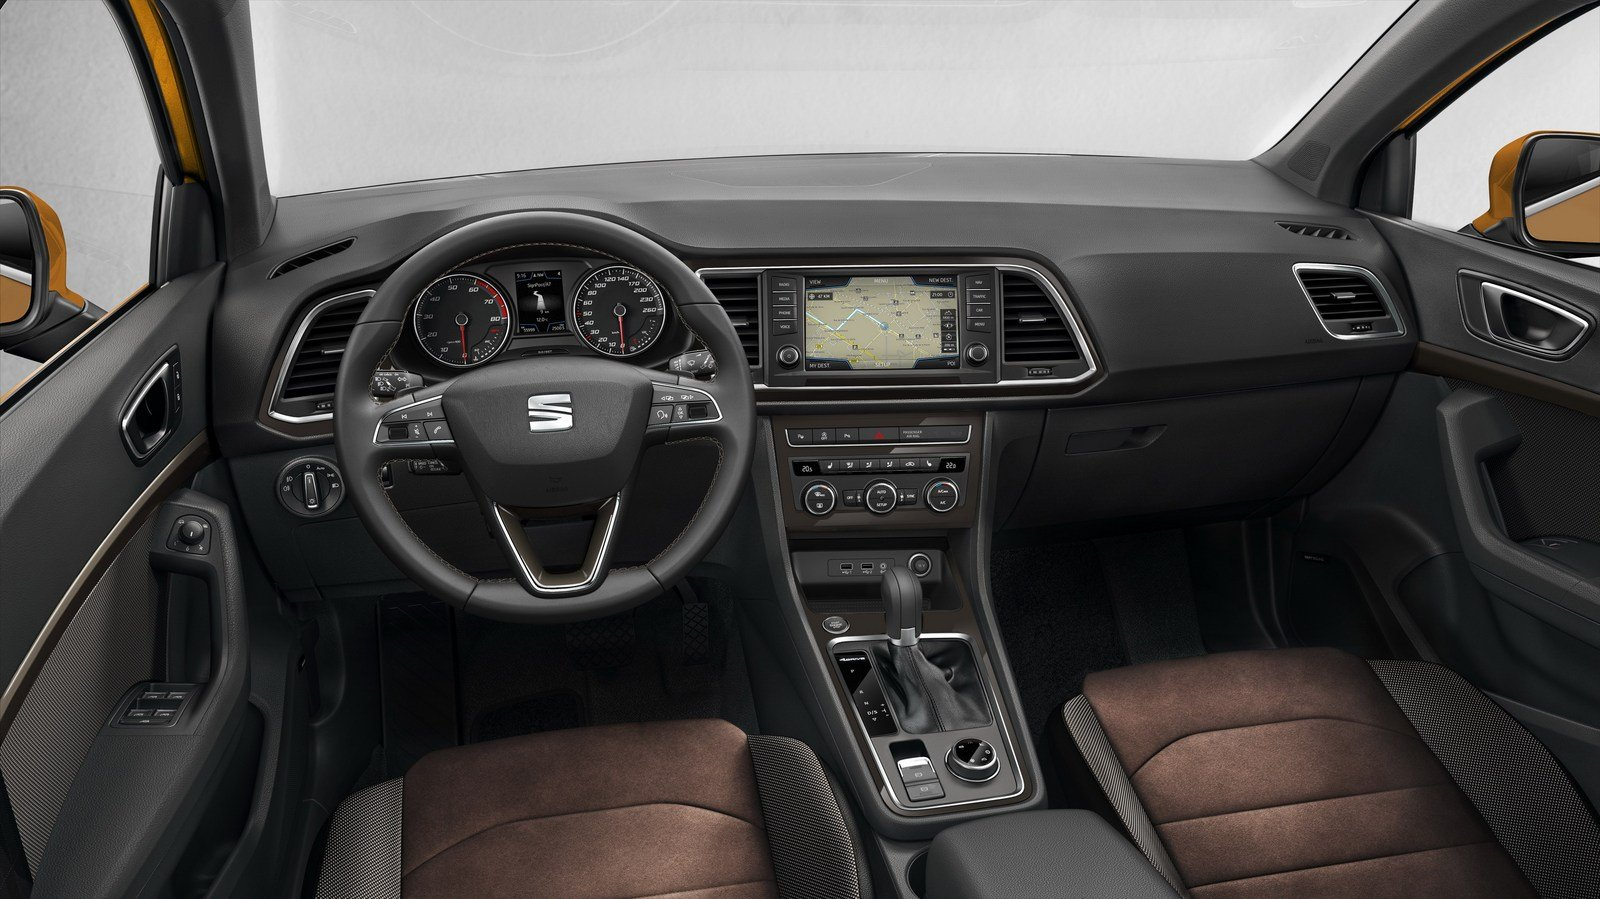 superb-design-of-the-brown-seats-ideas-with-black-dash-added-with-silver-steering-wheels-ideas-as-the-seat-ateca-2016-interior